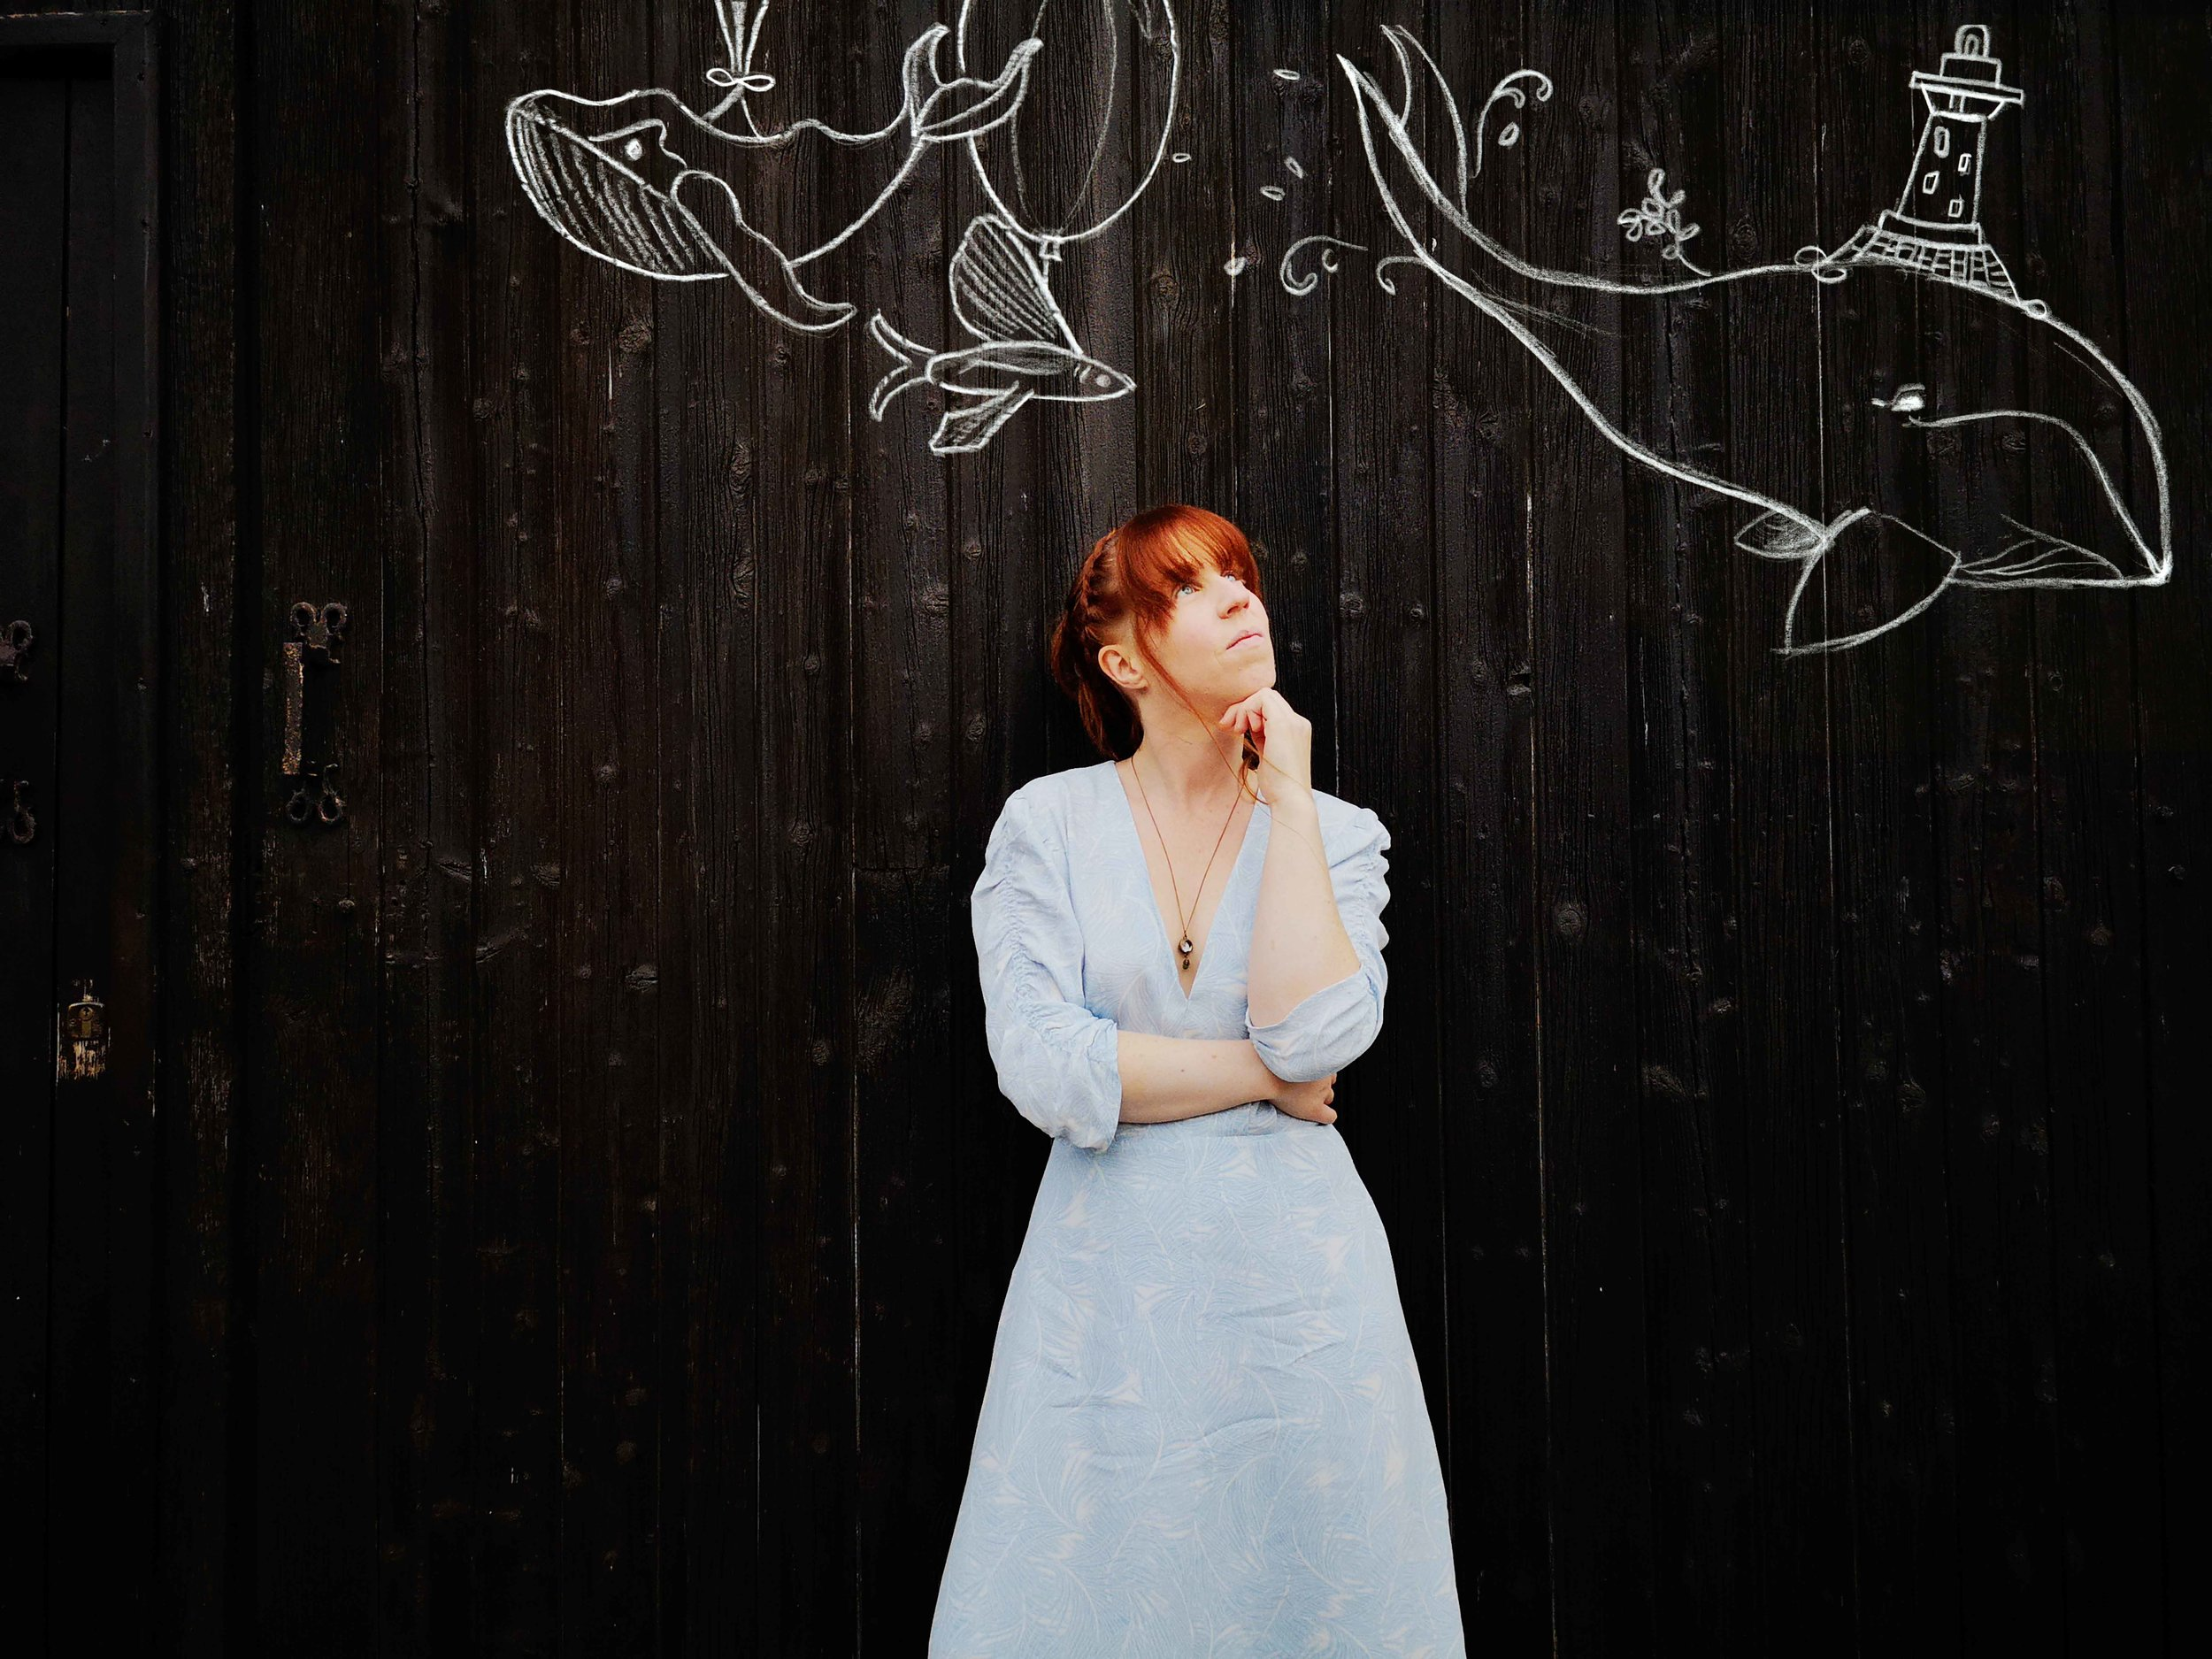 Cécile Corbel sous les dessins d'Andrea Kiss. Photo Bran Music